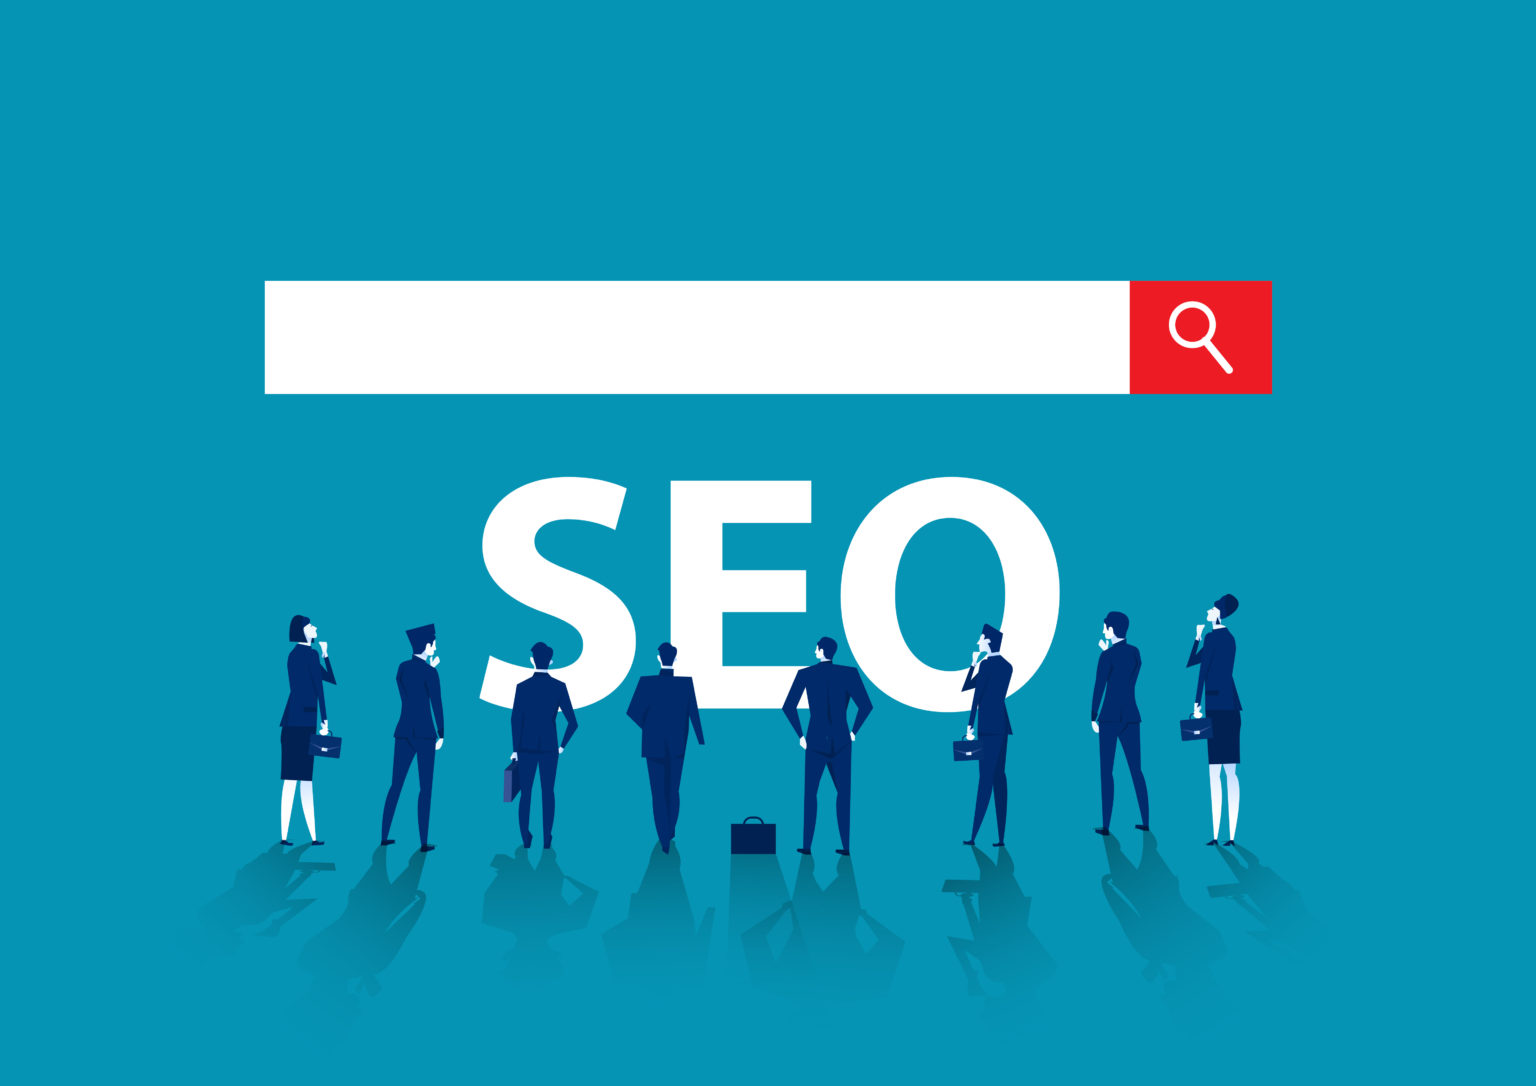 seo-people